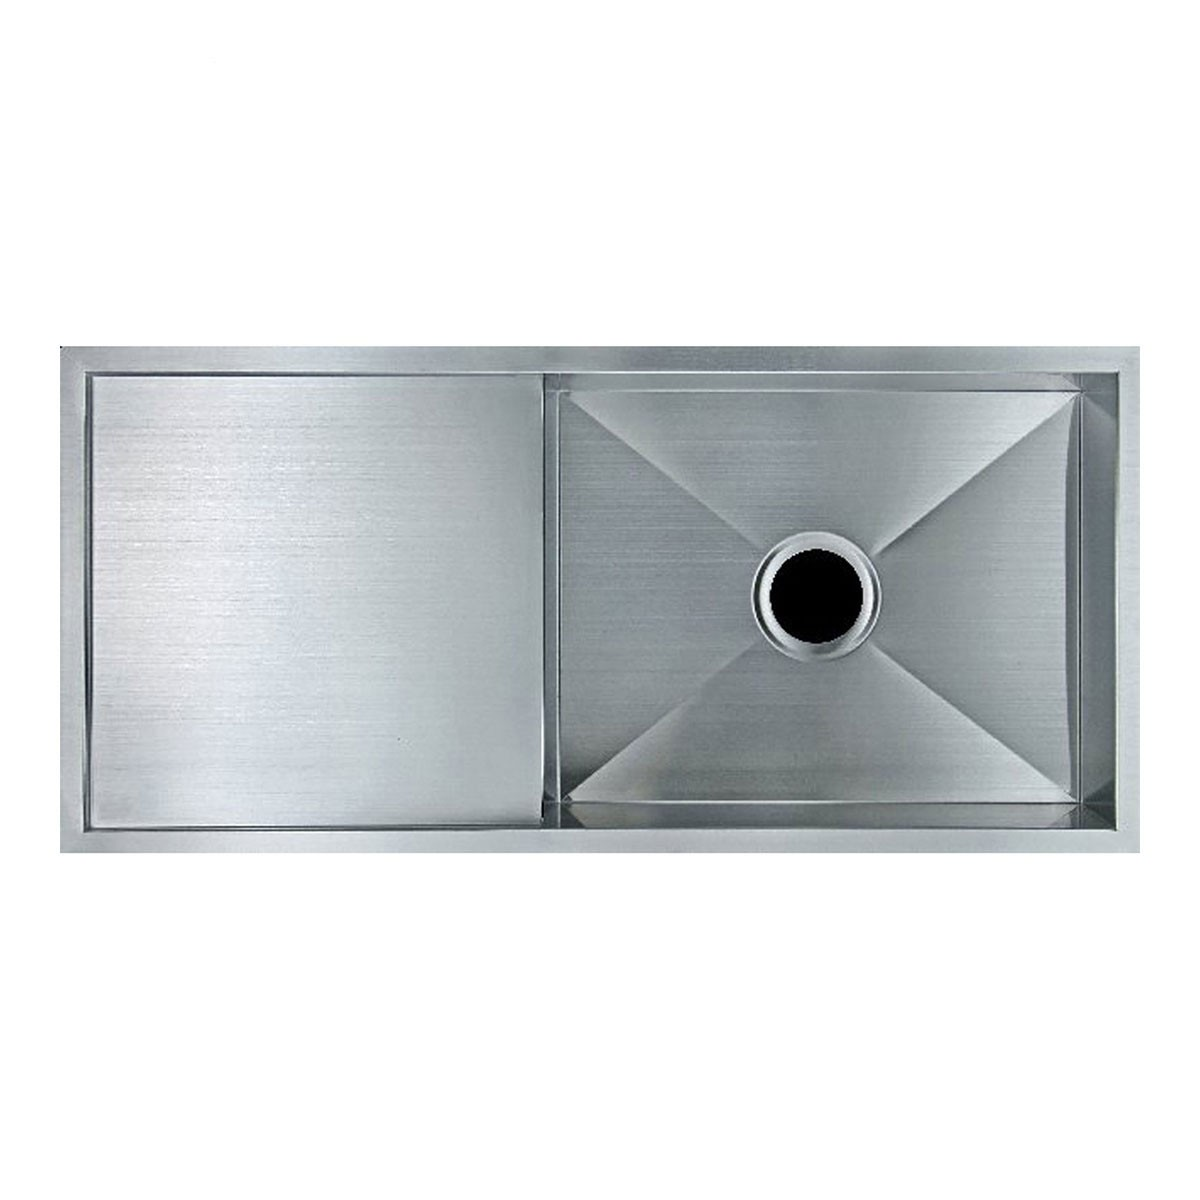 29 x 18 In. Stainless Steel Single Bowl Kitchen Sink (ABR2918-R0 ...